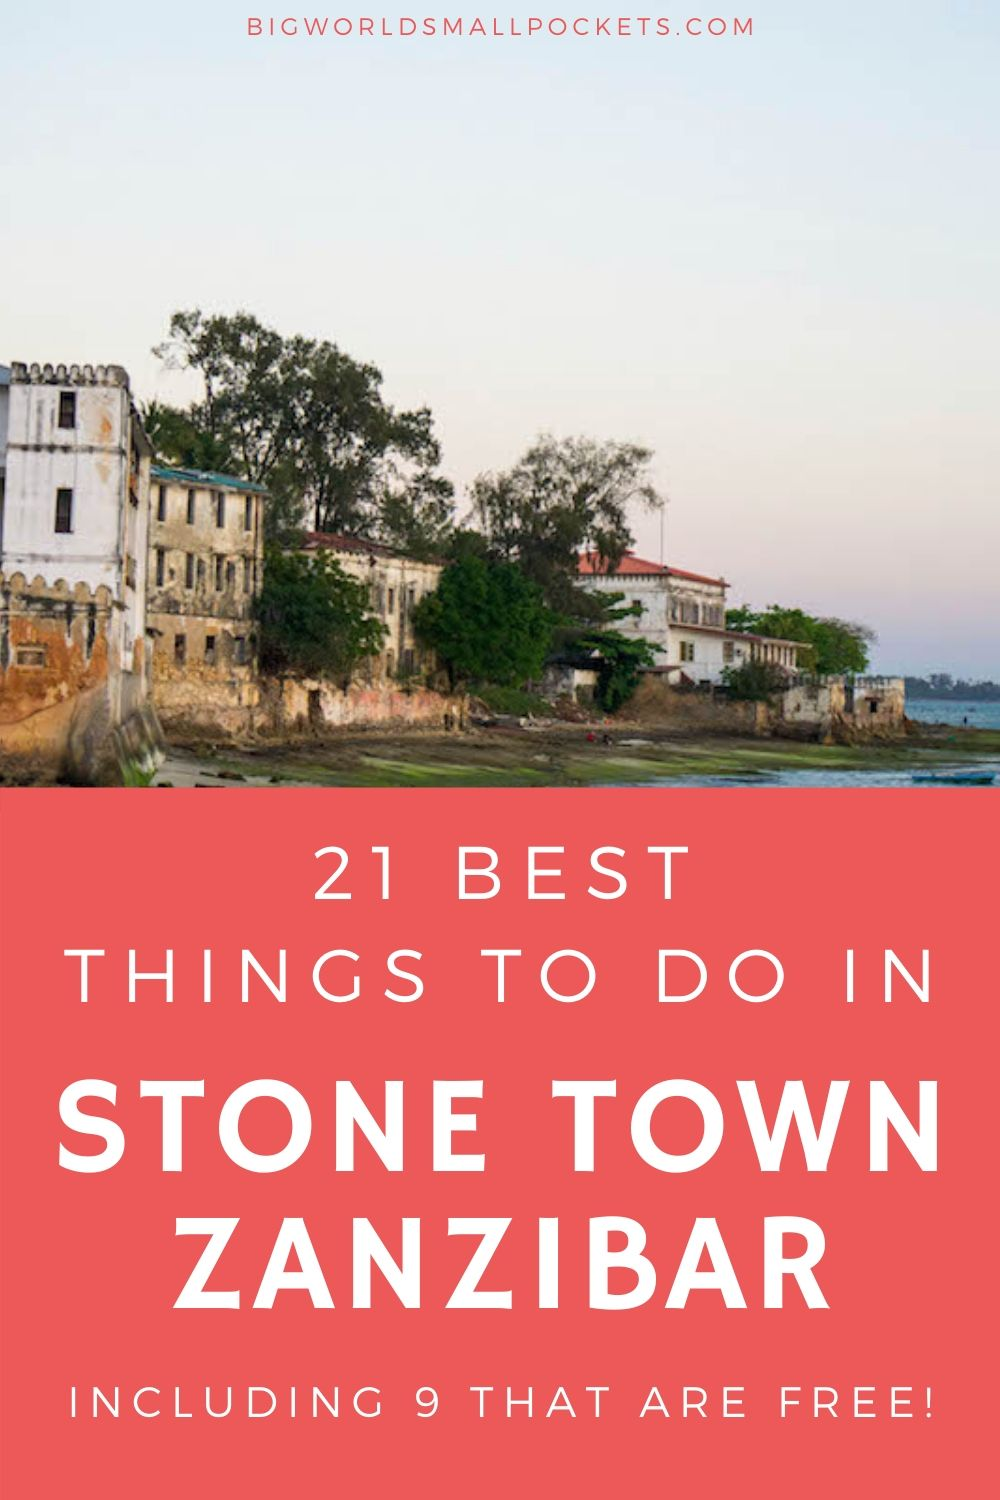 21 Best Things To Do In Stone Town, Zanzibar